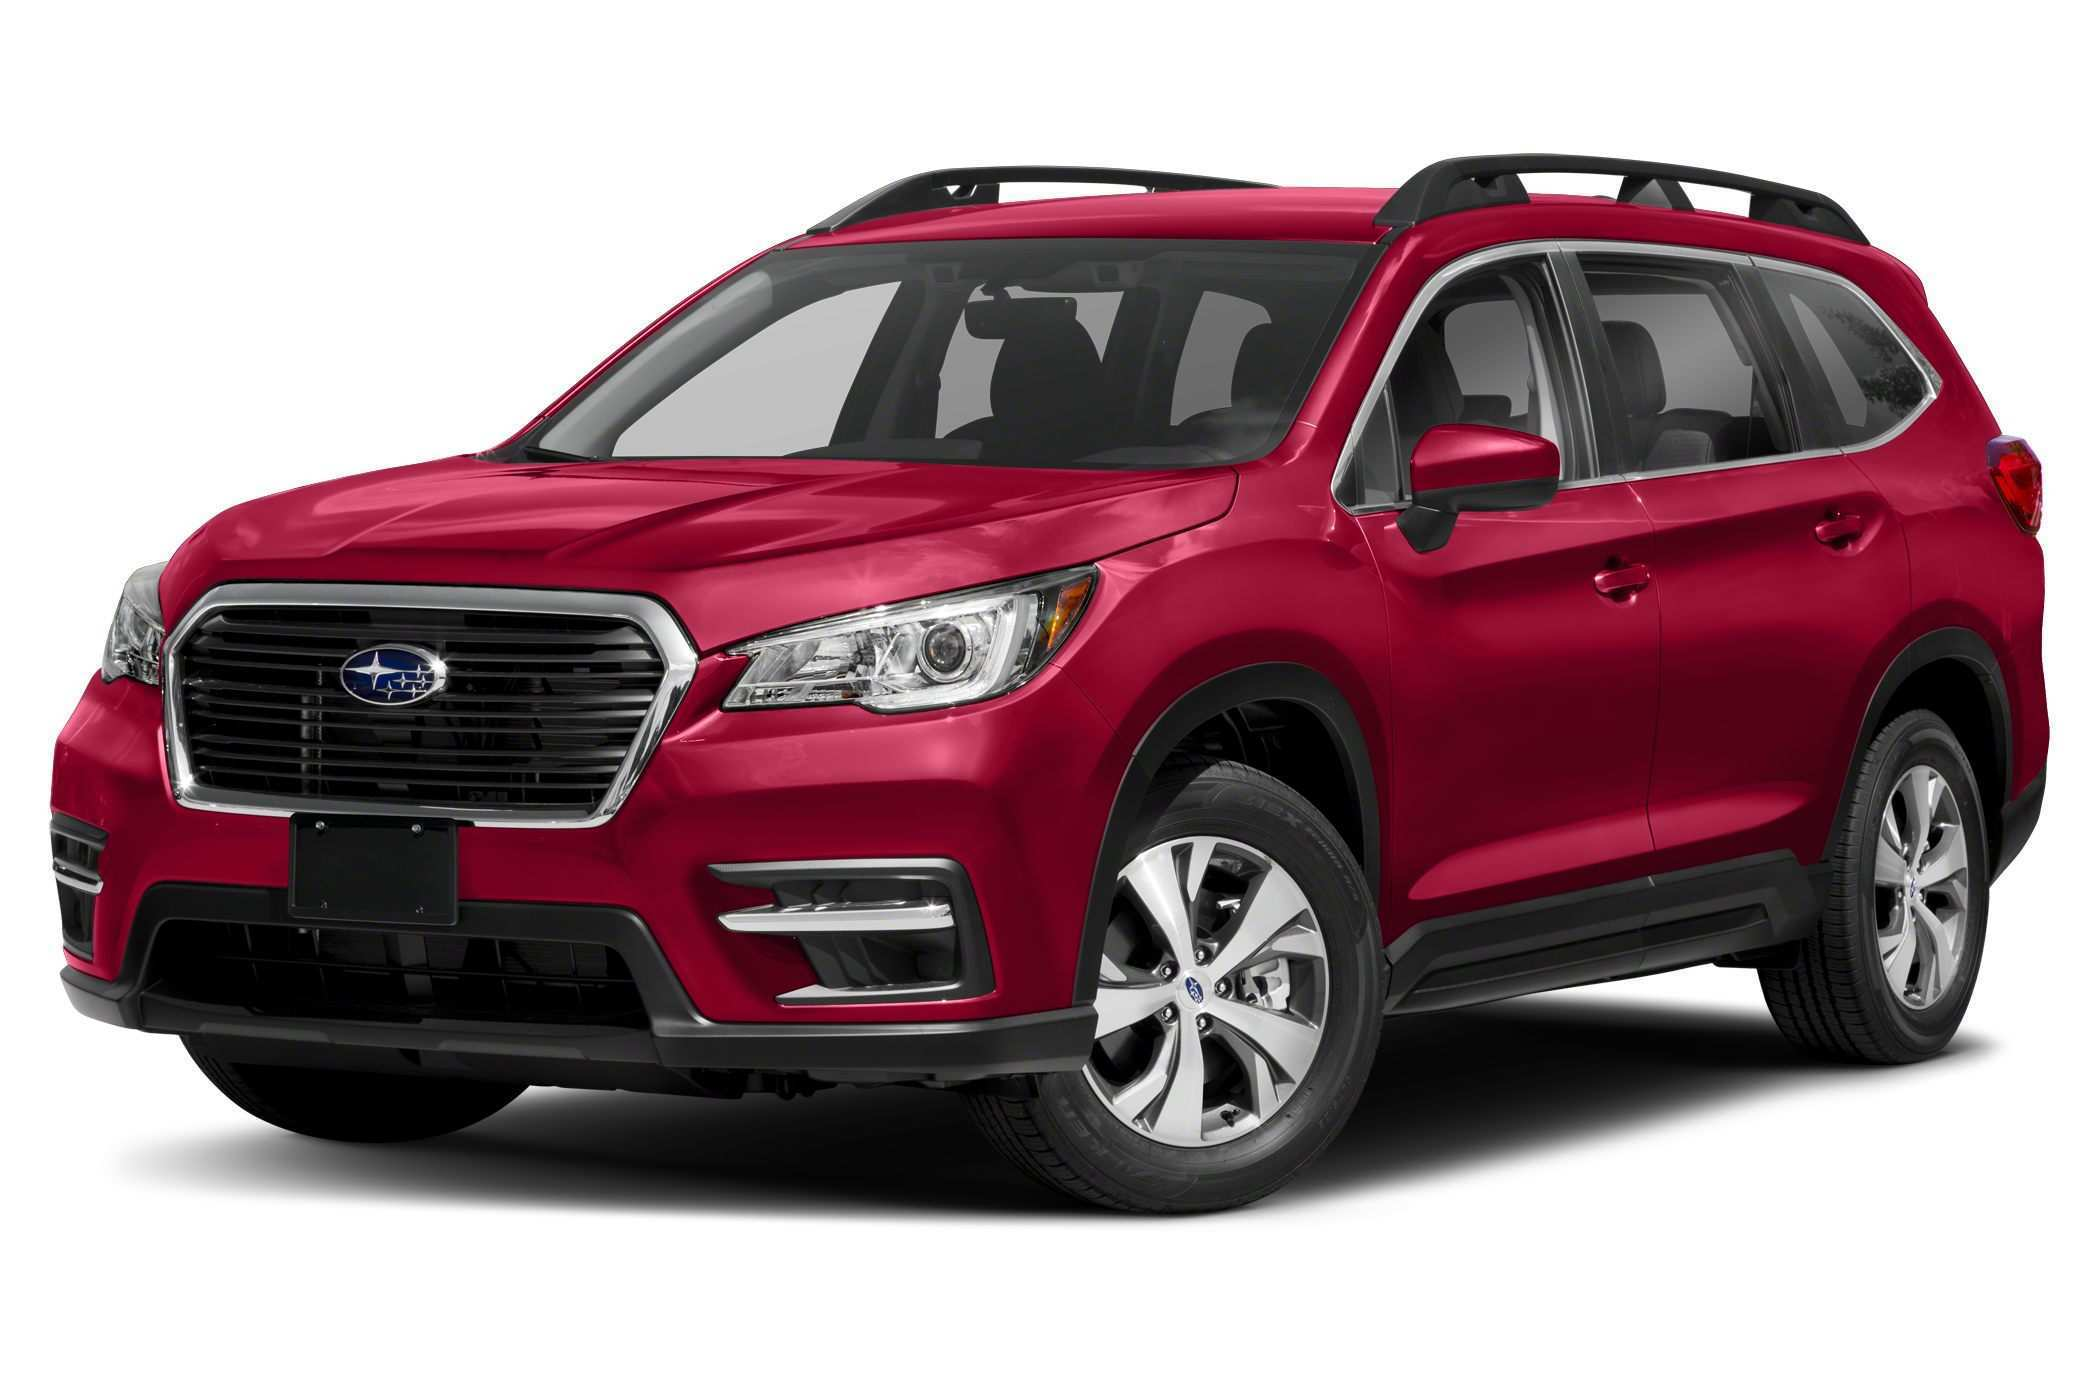 18 Great 2019 Subaru Ascent Price Rumors for 2019 Subaru Ascent Price